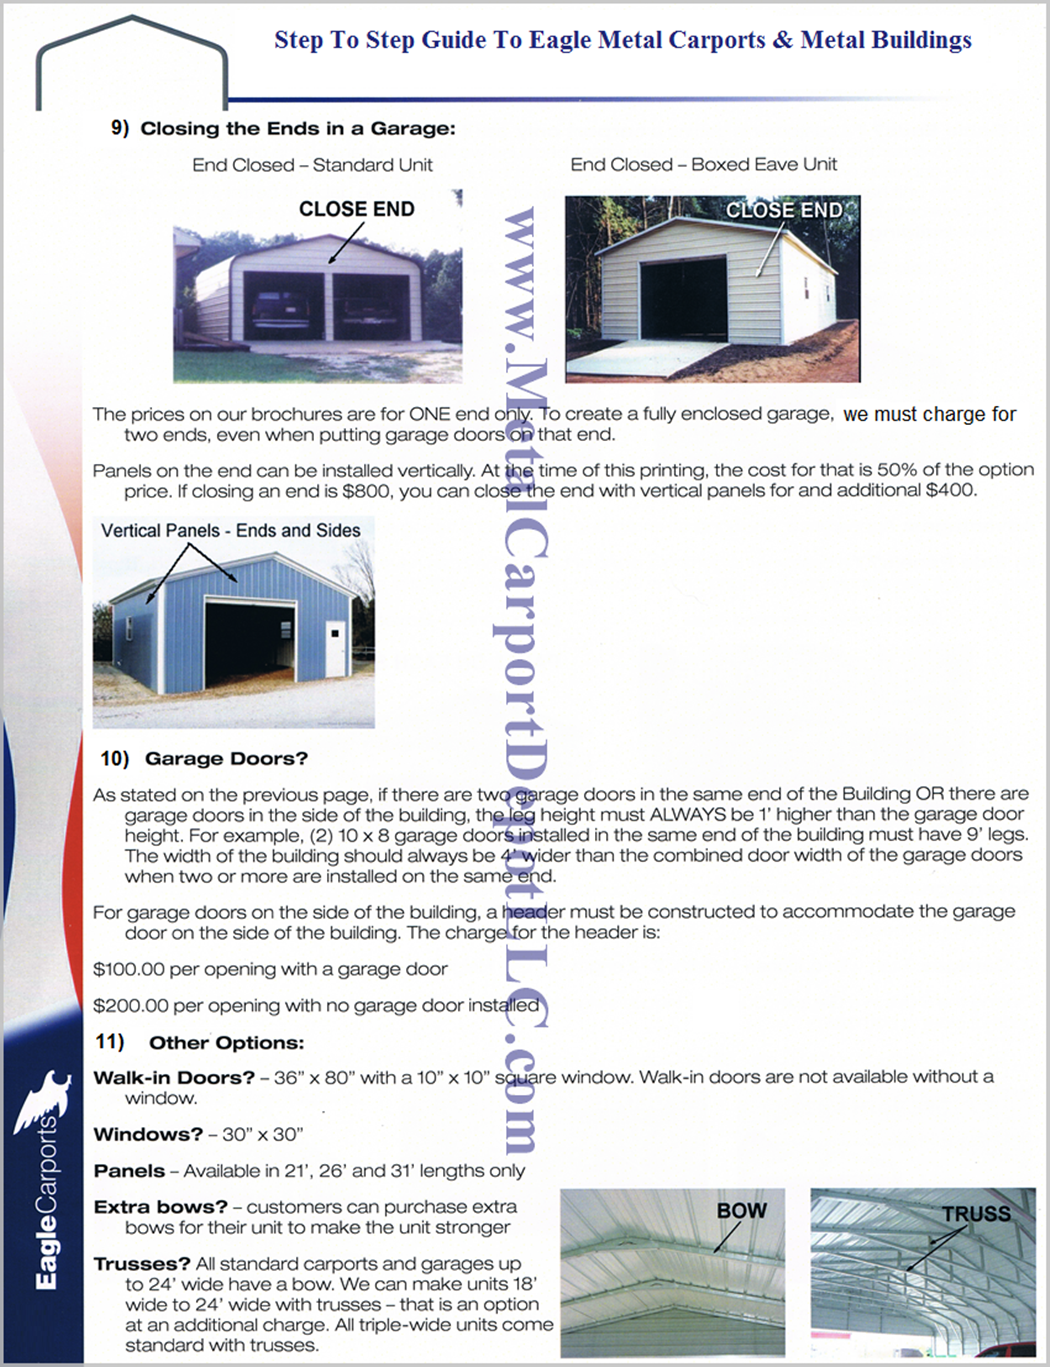 Guide To Metal Carports & Metal Buildings Pg 2